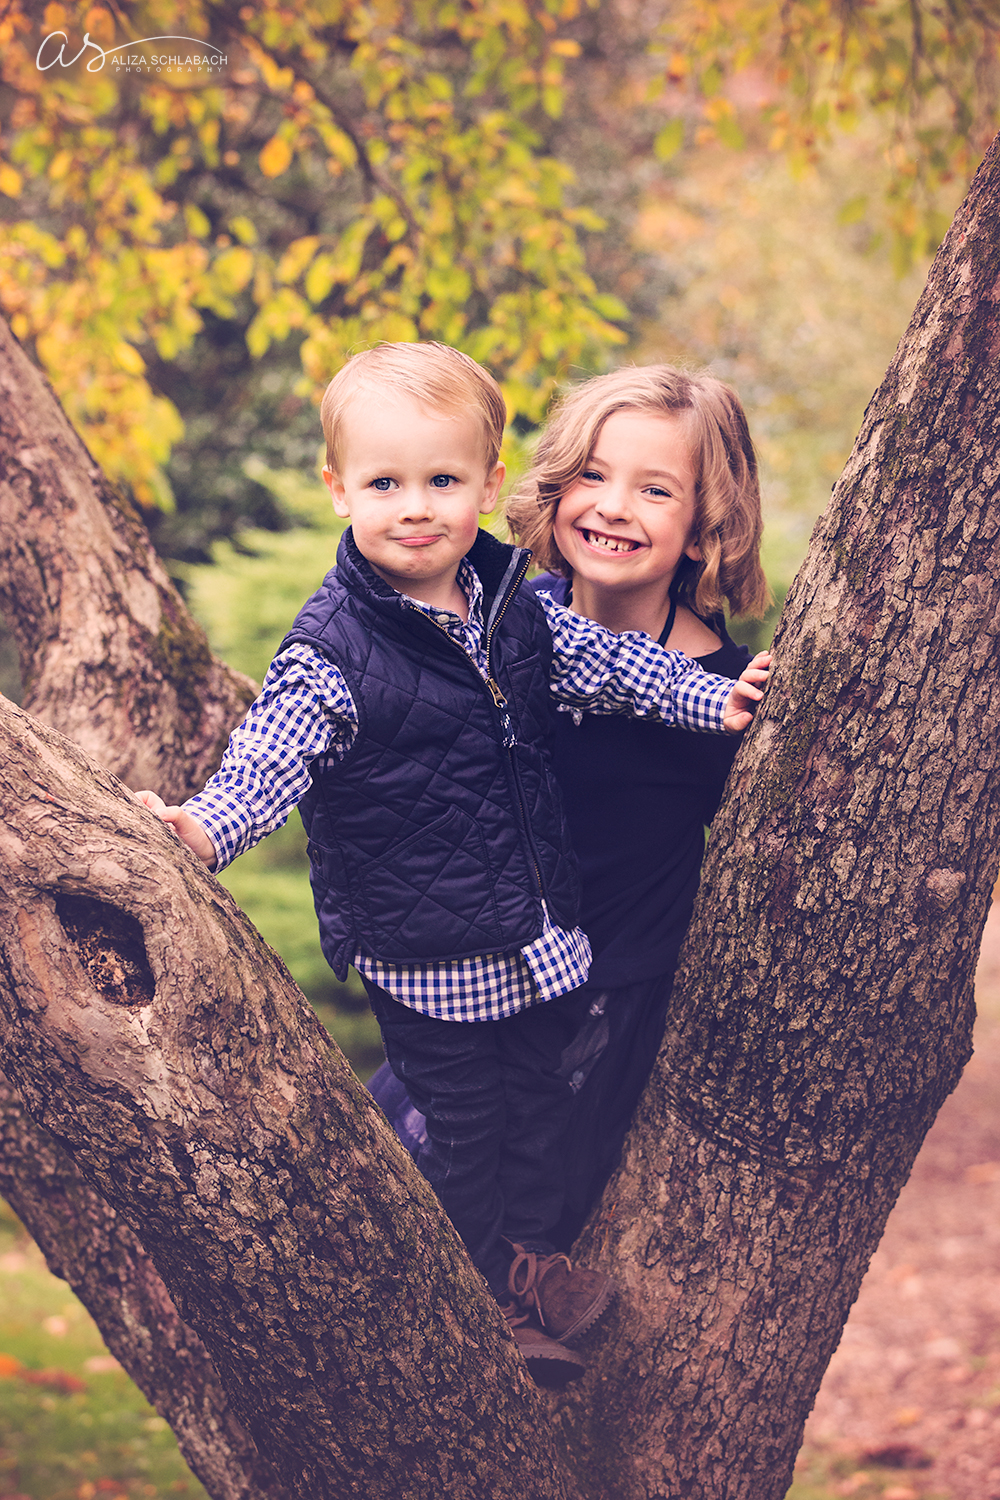 Photo of a little girl and her toddler brother in a tree